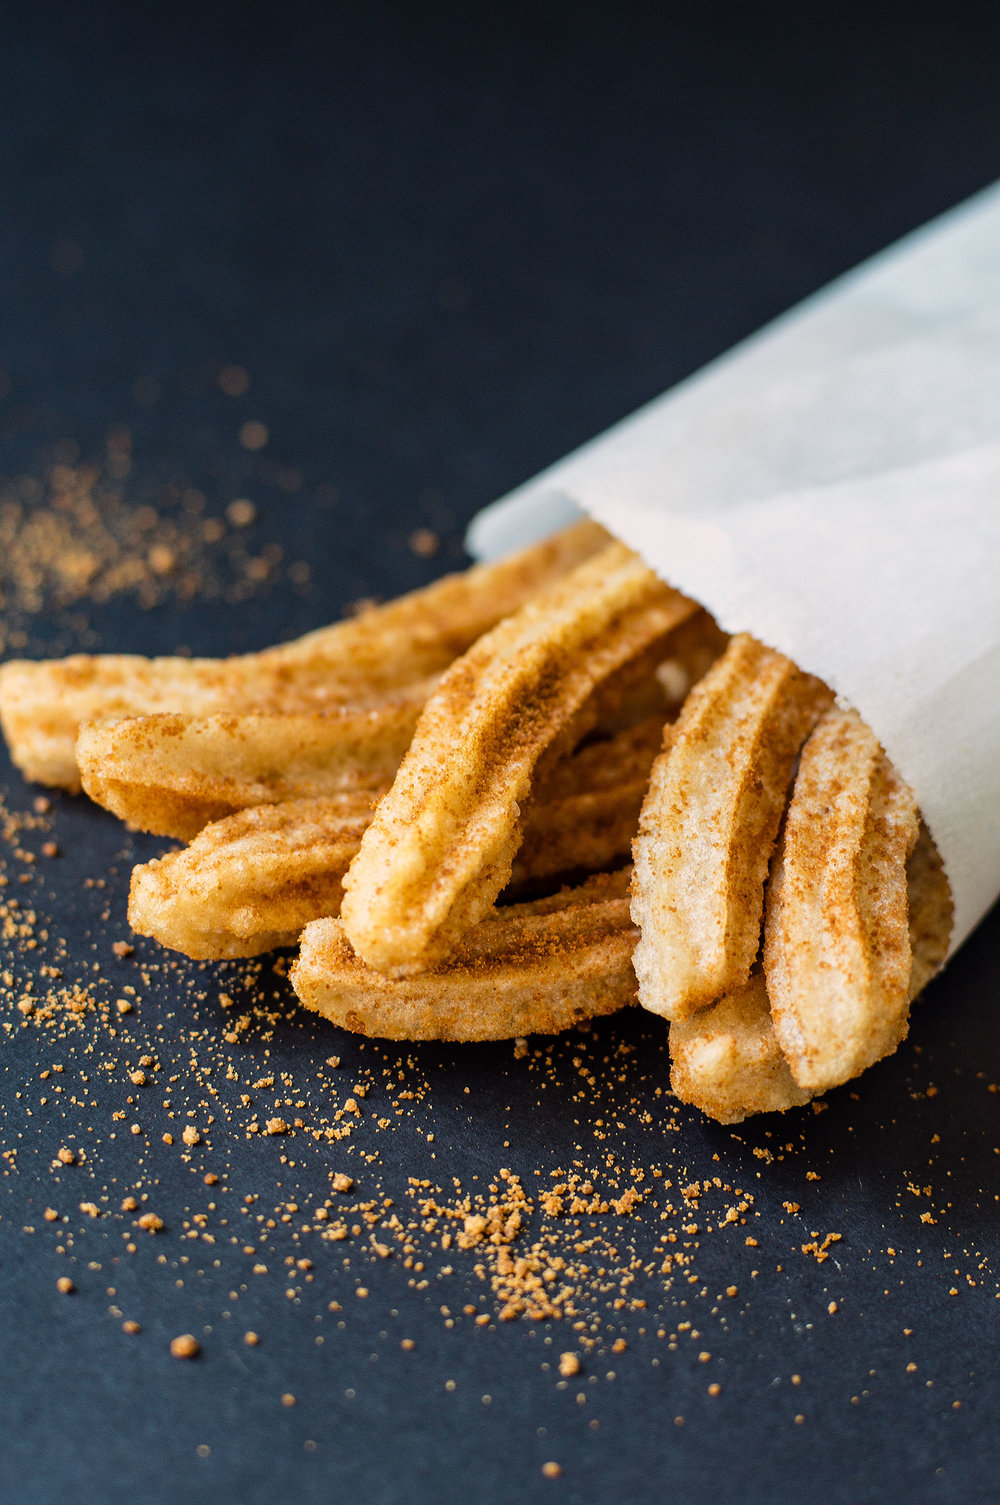 Check out Amanda's  Churros Mexicanos Recipe here!